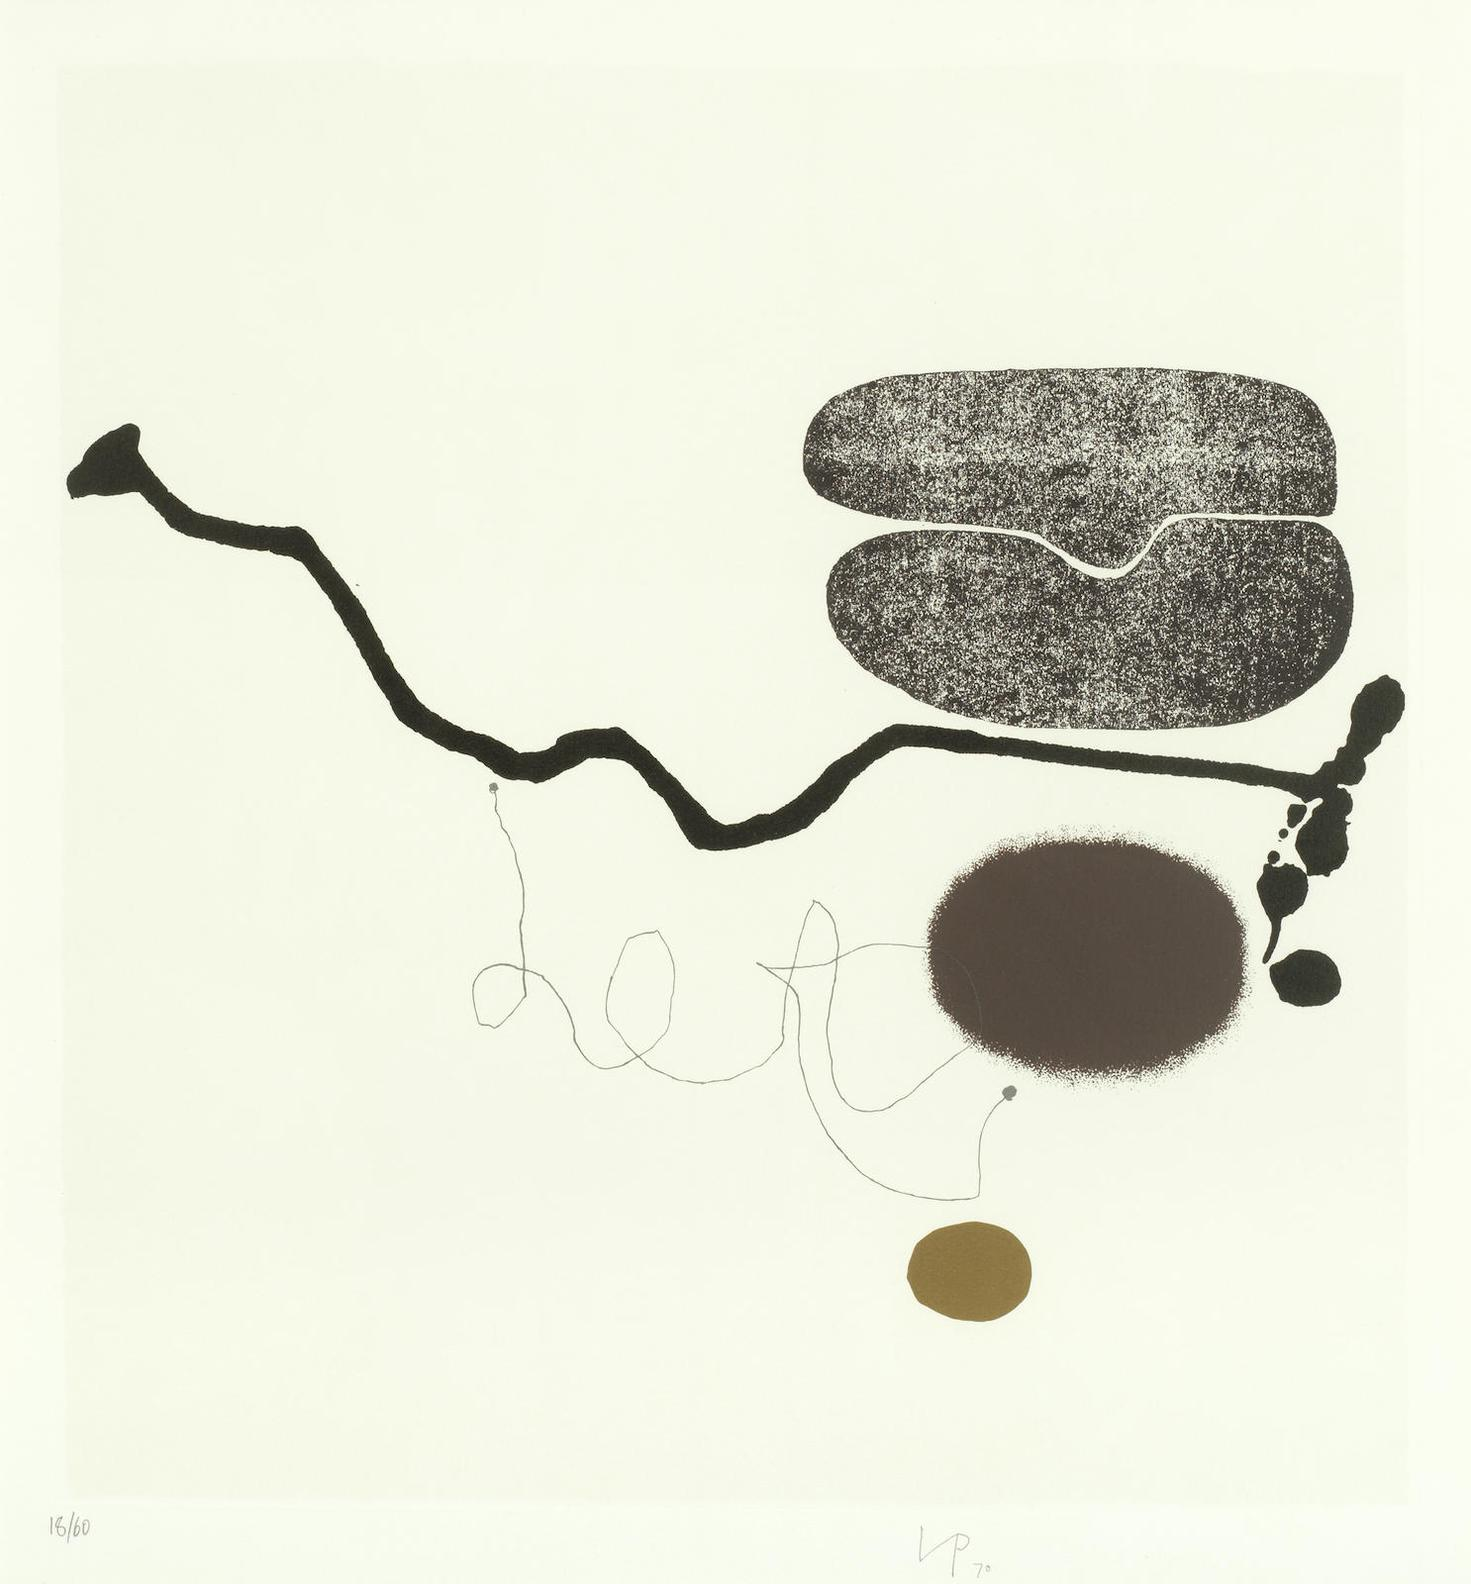 Victor Pasmore-Linear Development 7, From Points Of Contact - Linear Developments-1971